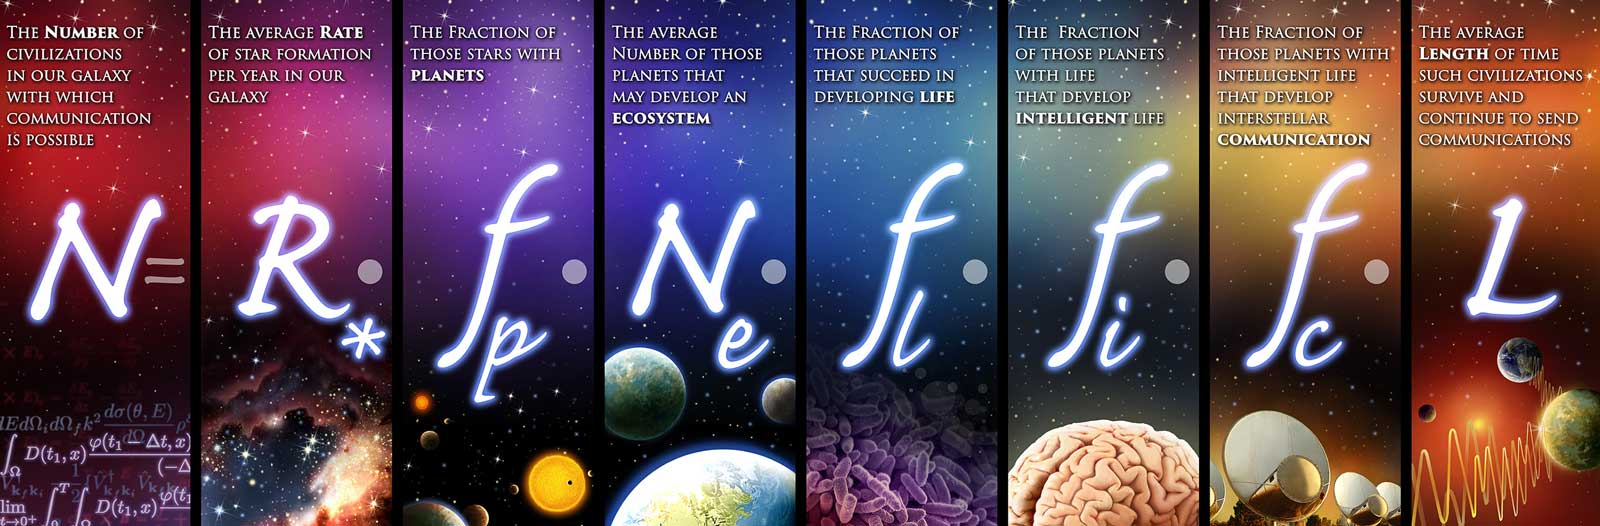 drake-equation-1600px.jpg